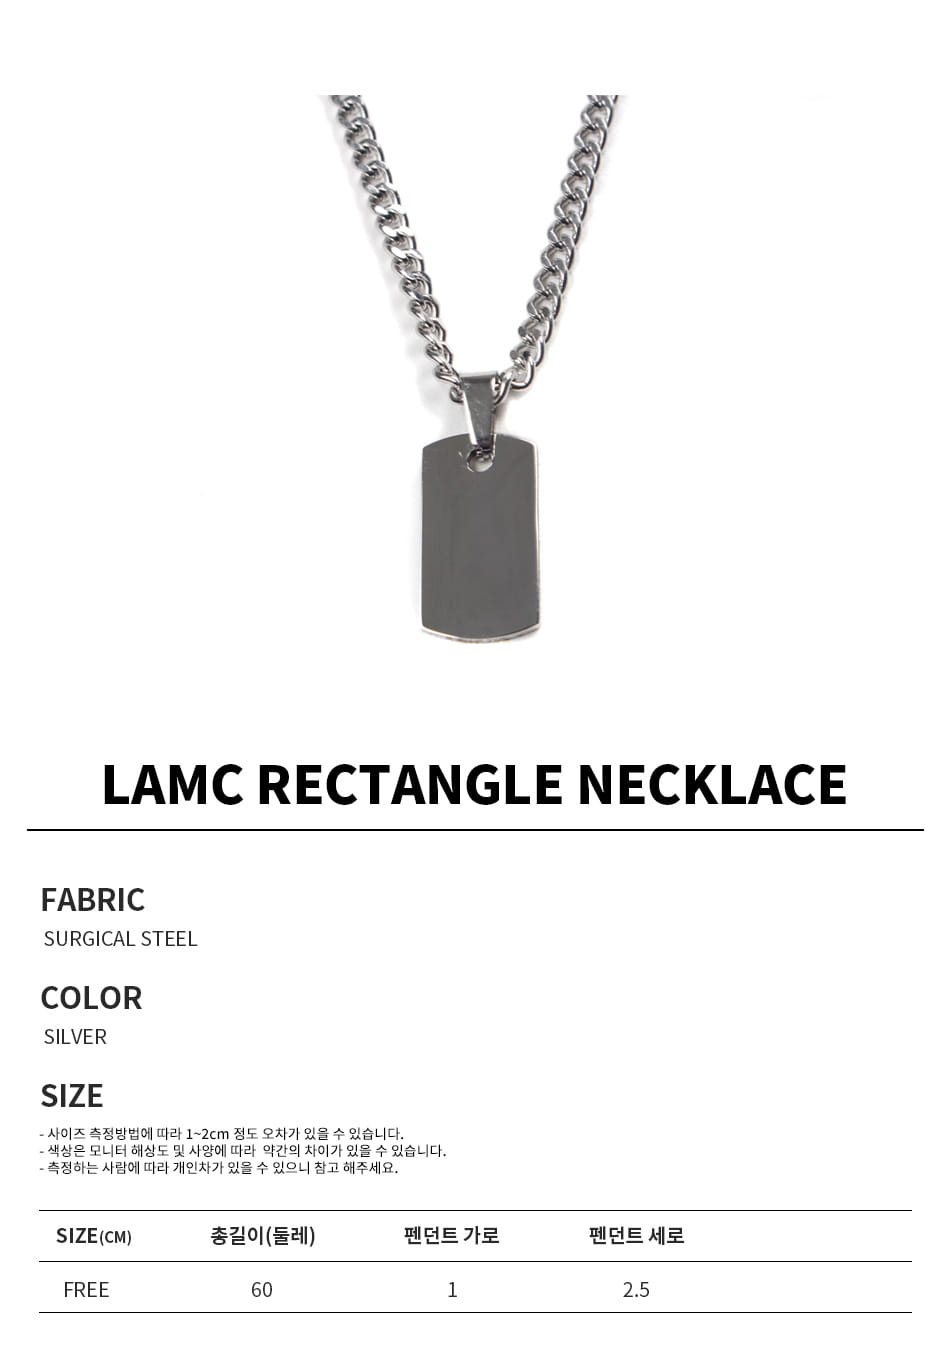 라모드치프 LAMC RECTANGLE NECKLACE